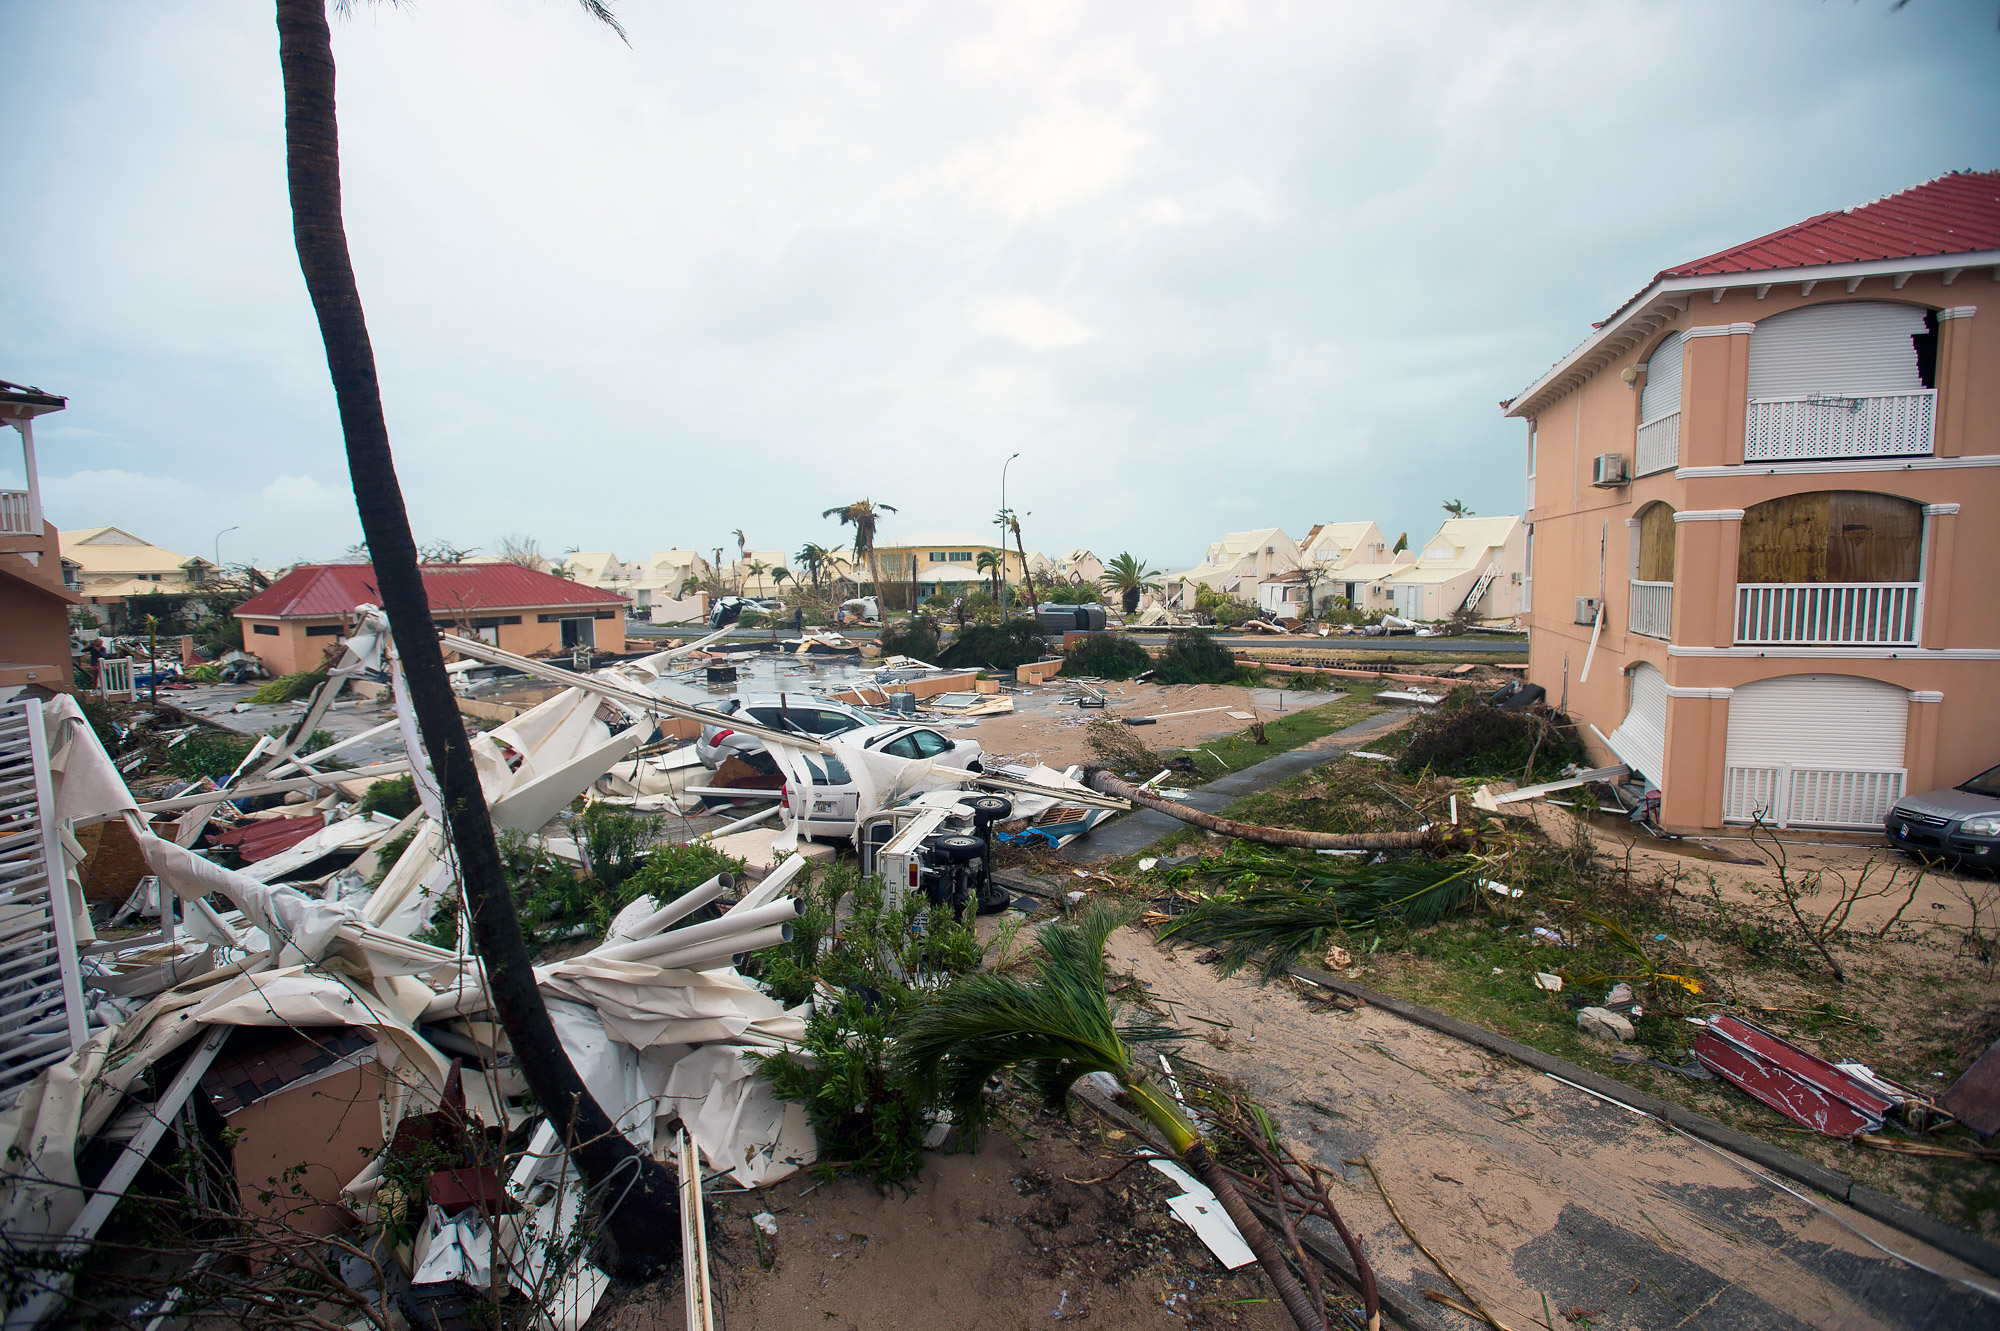 FRANCE-OVERSEAS-CARIBBEAN-WEATHER-HURRICANE